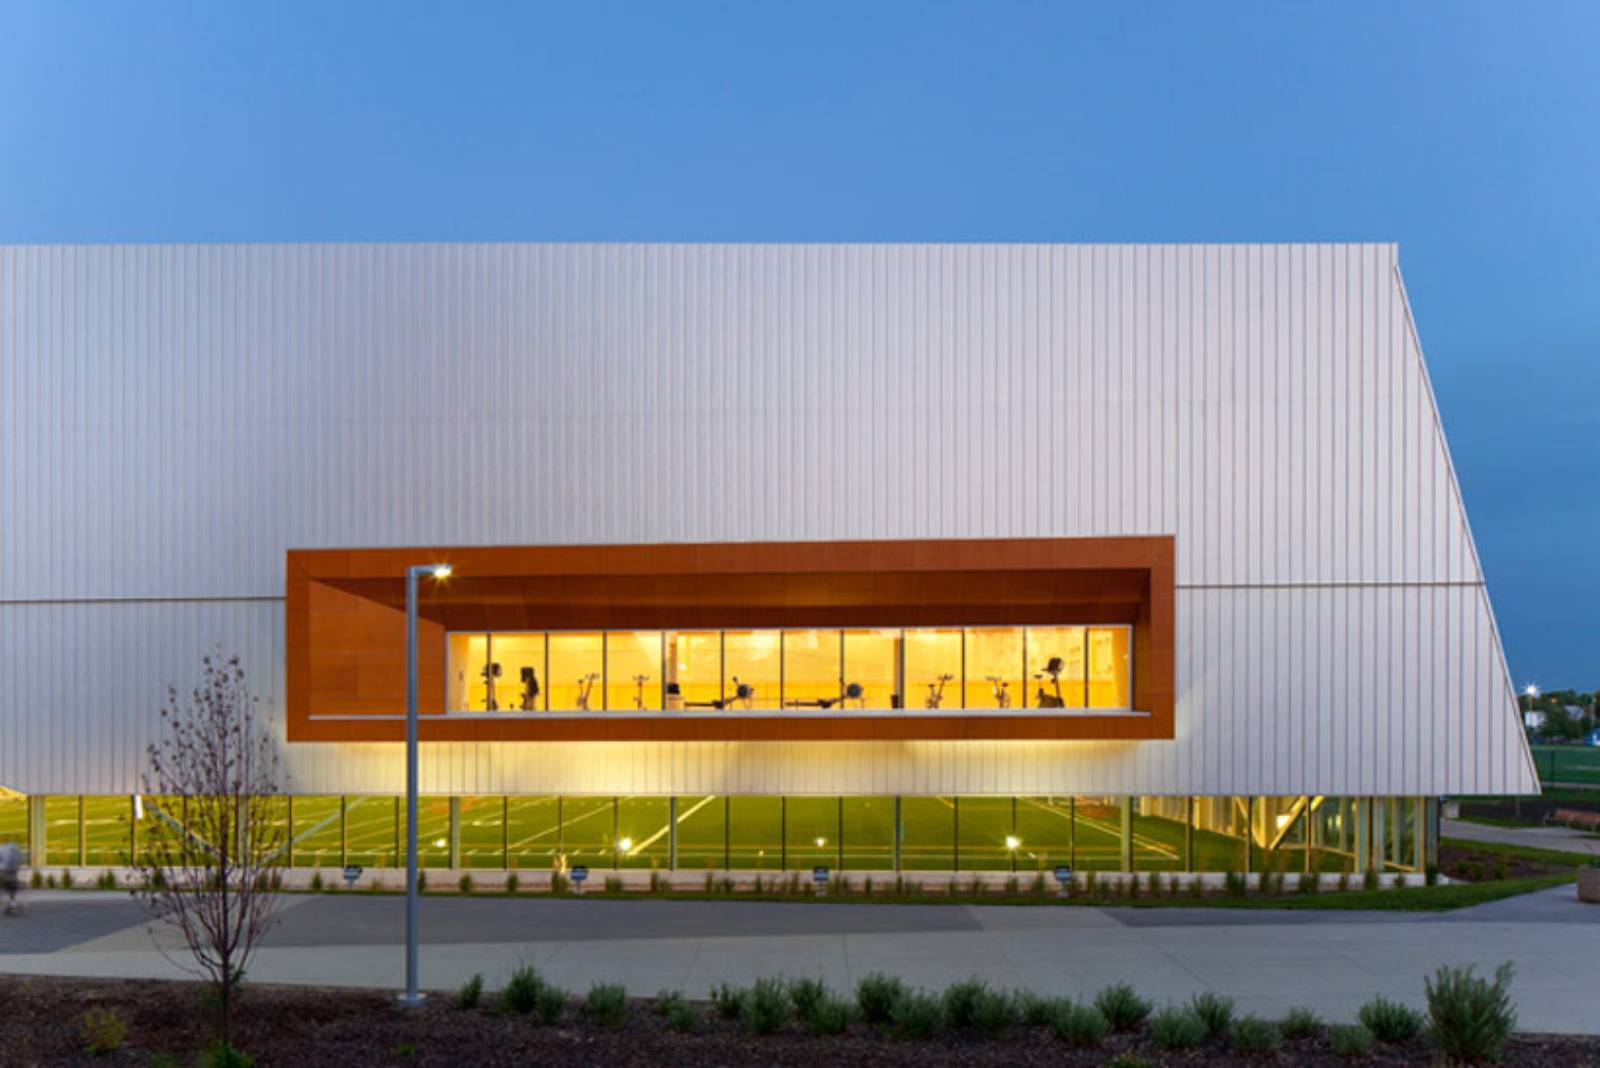 Commonwealth Community Recreation Center By Mjma A As